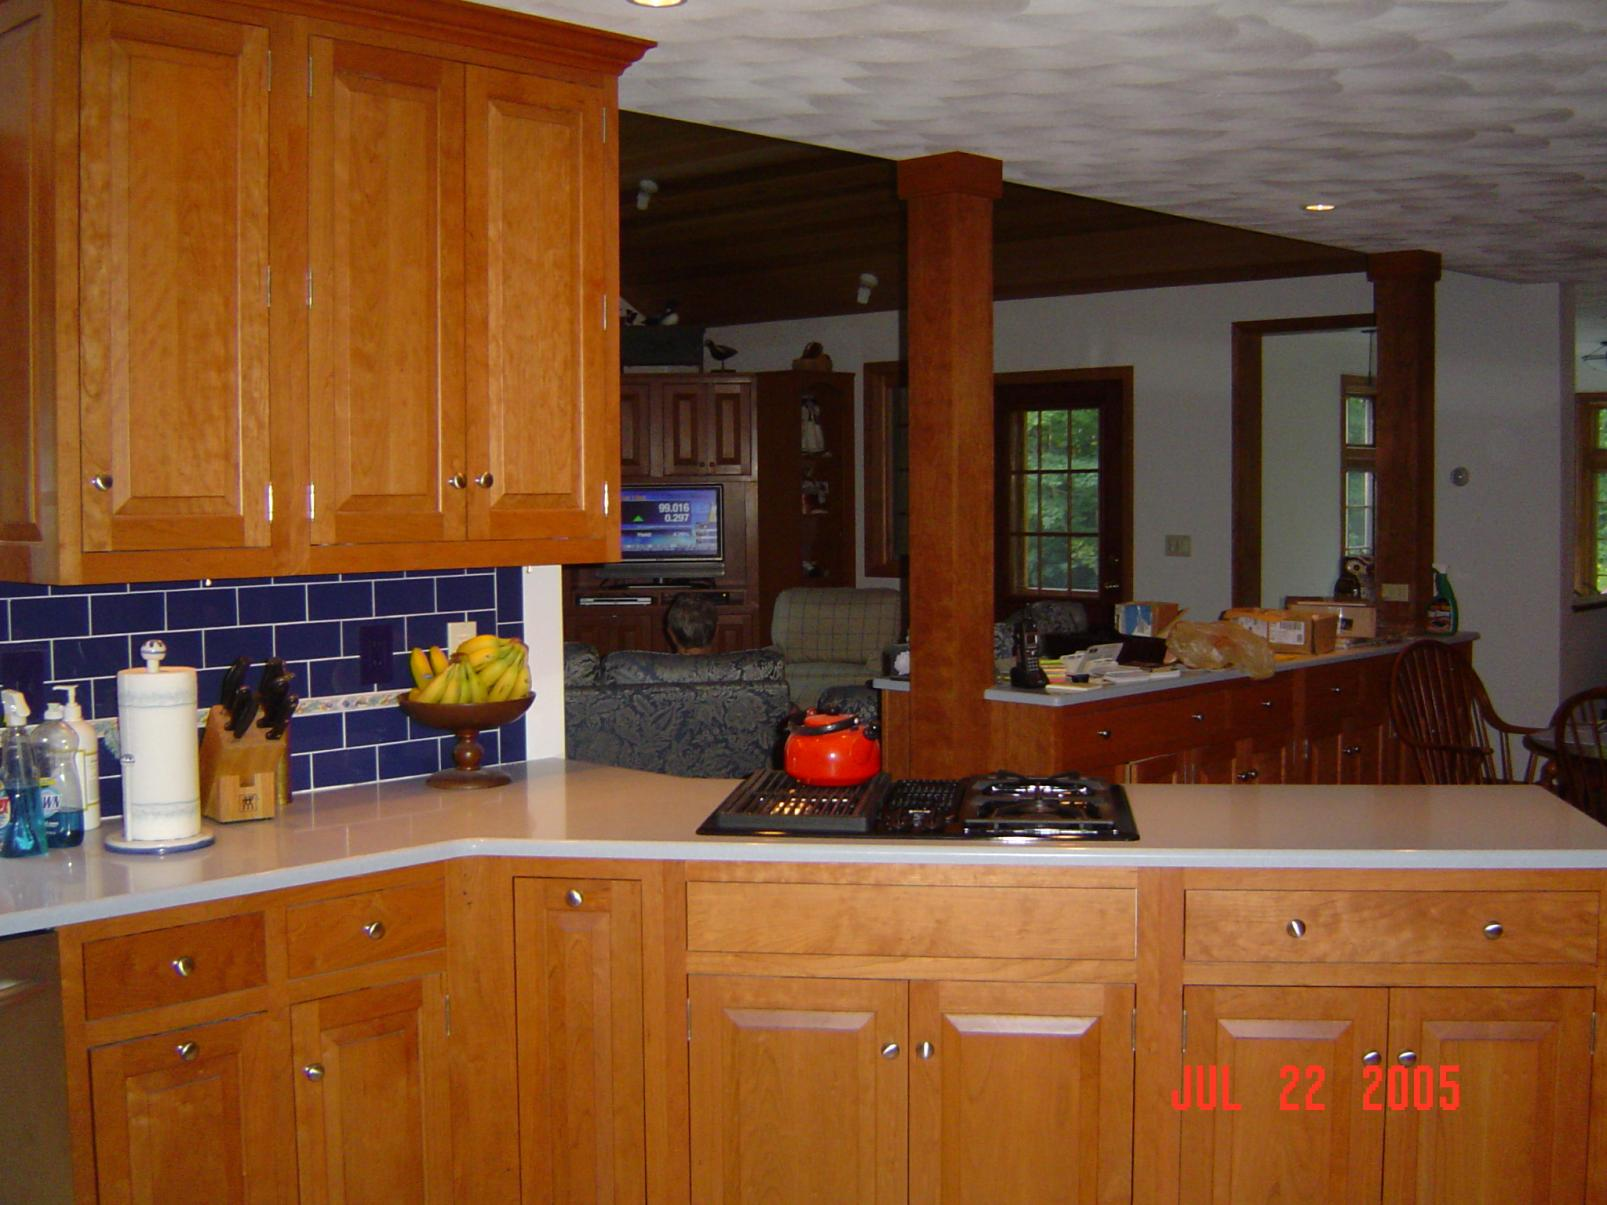 Crown Point Cabinets  General Discussion  Contractor Talk